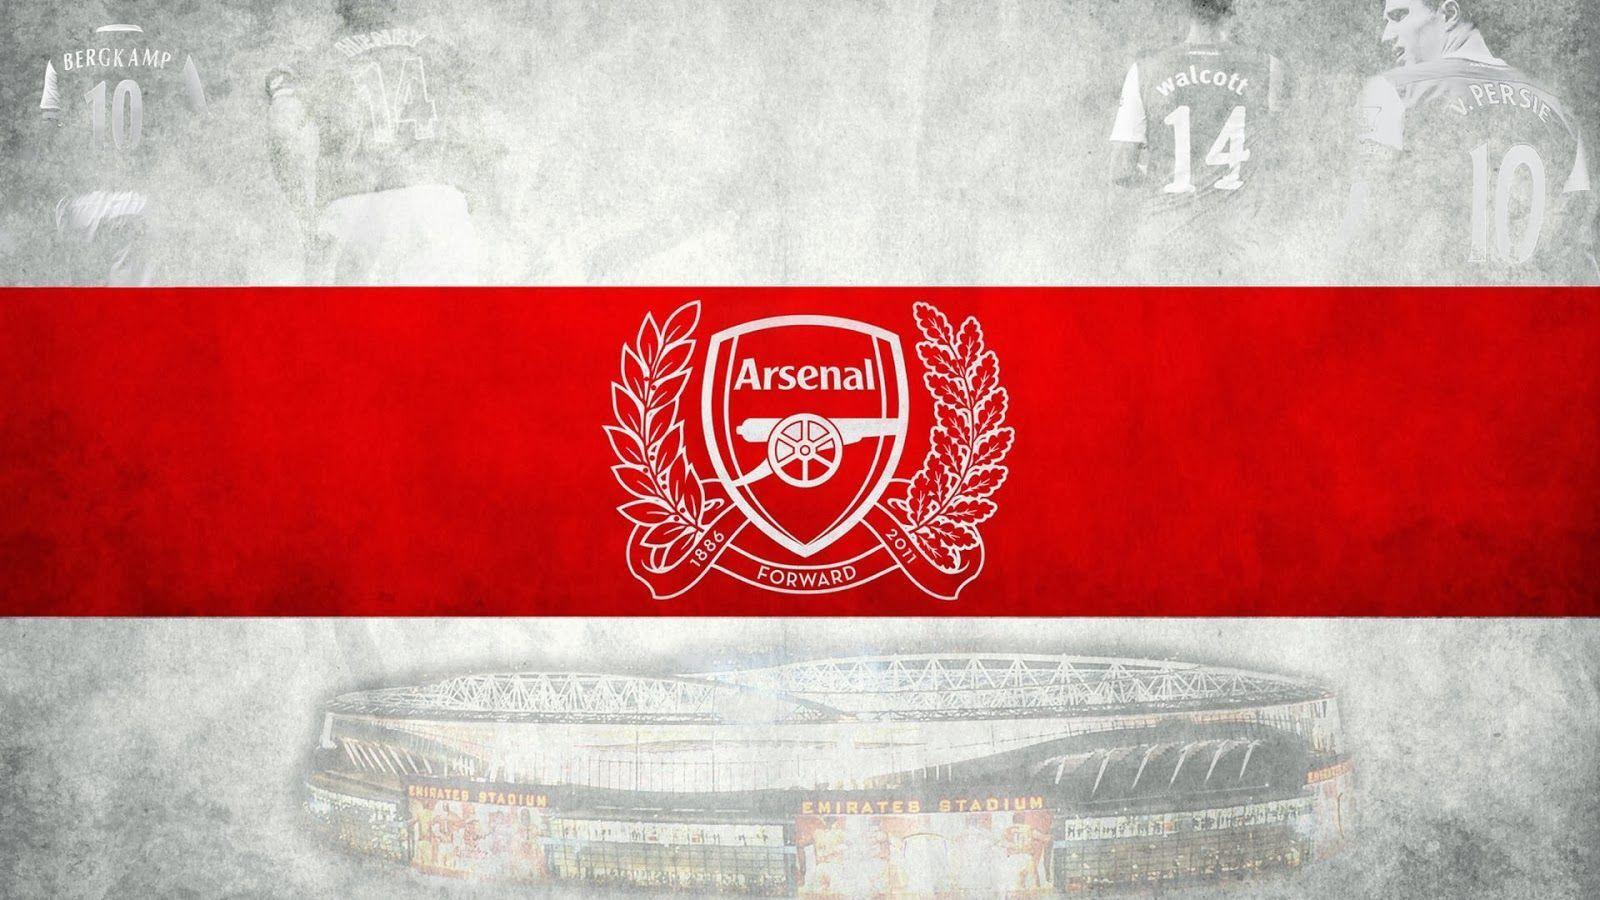 Arsenal Fc Wallpapers 2015 - Wallpaper Cave